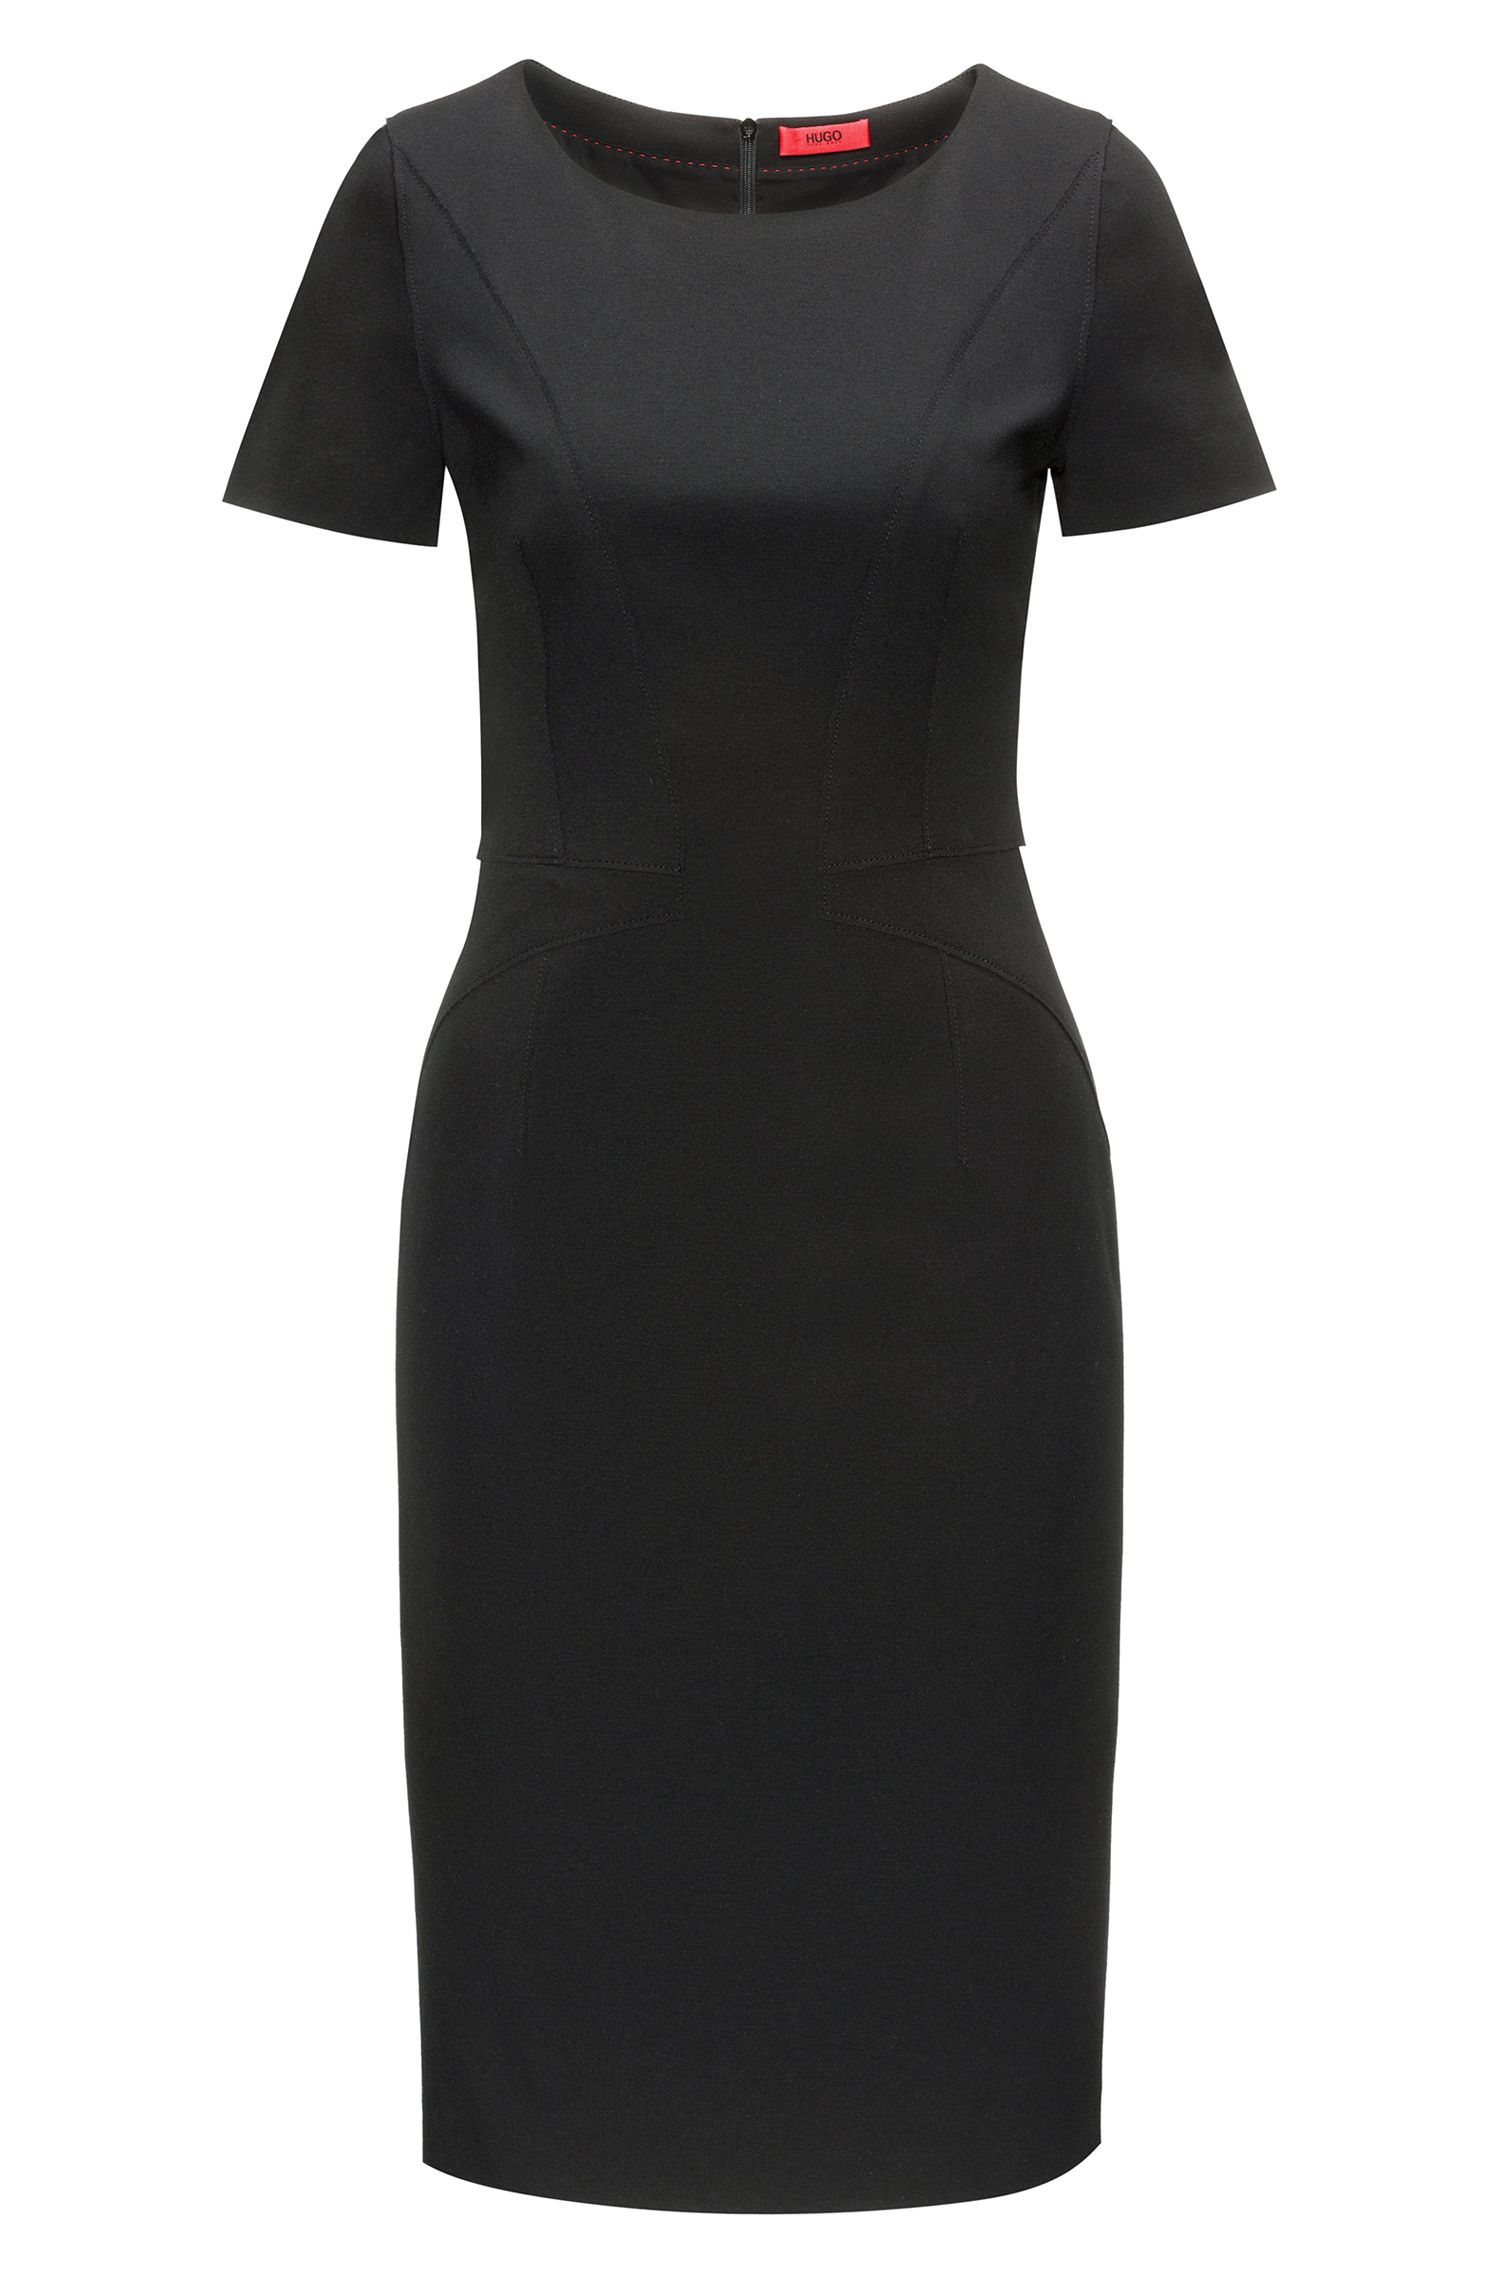 Pencil dress in panelled stretch jersey